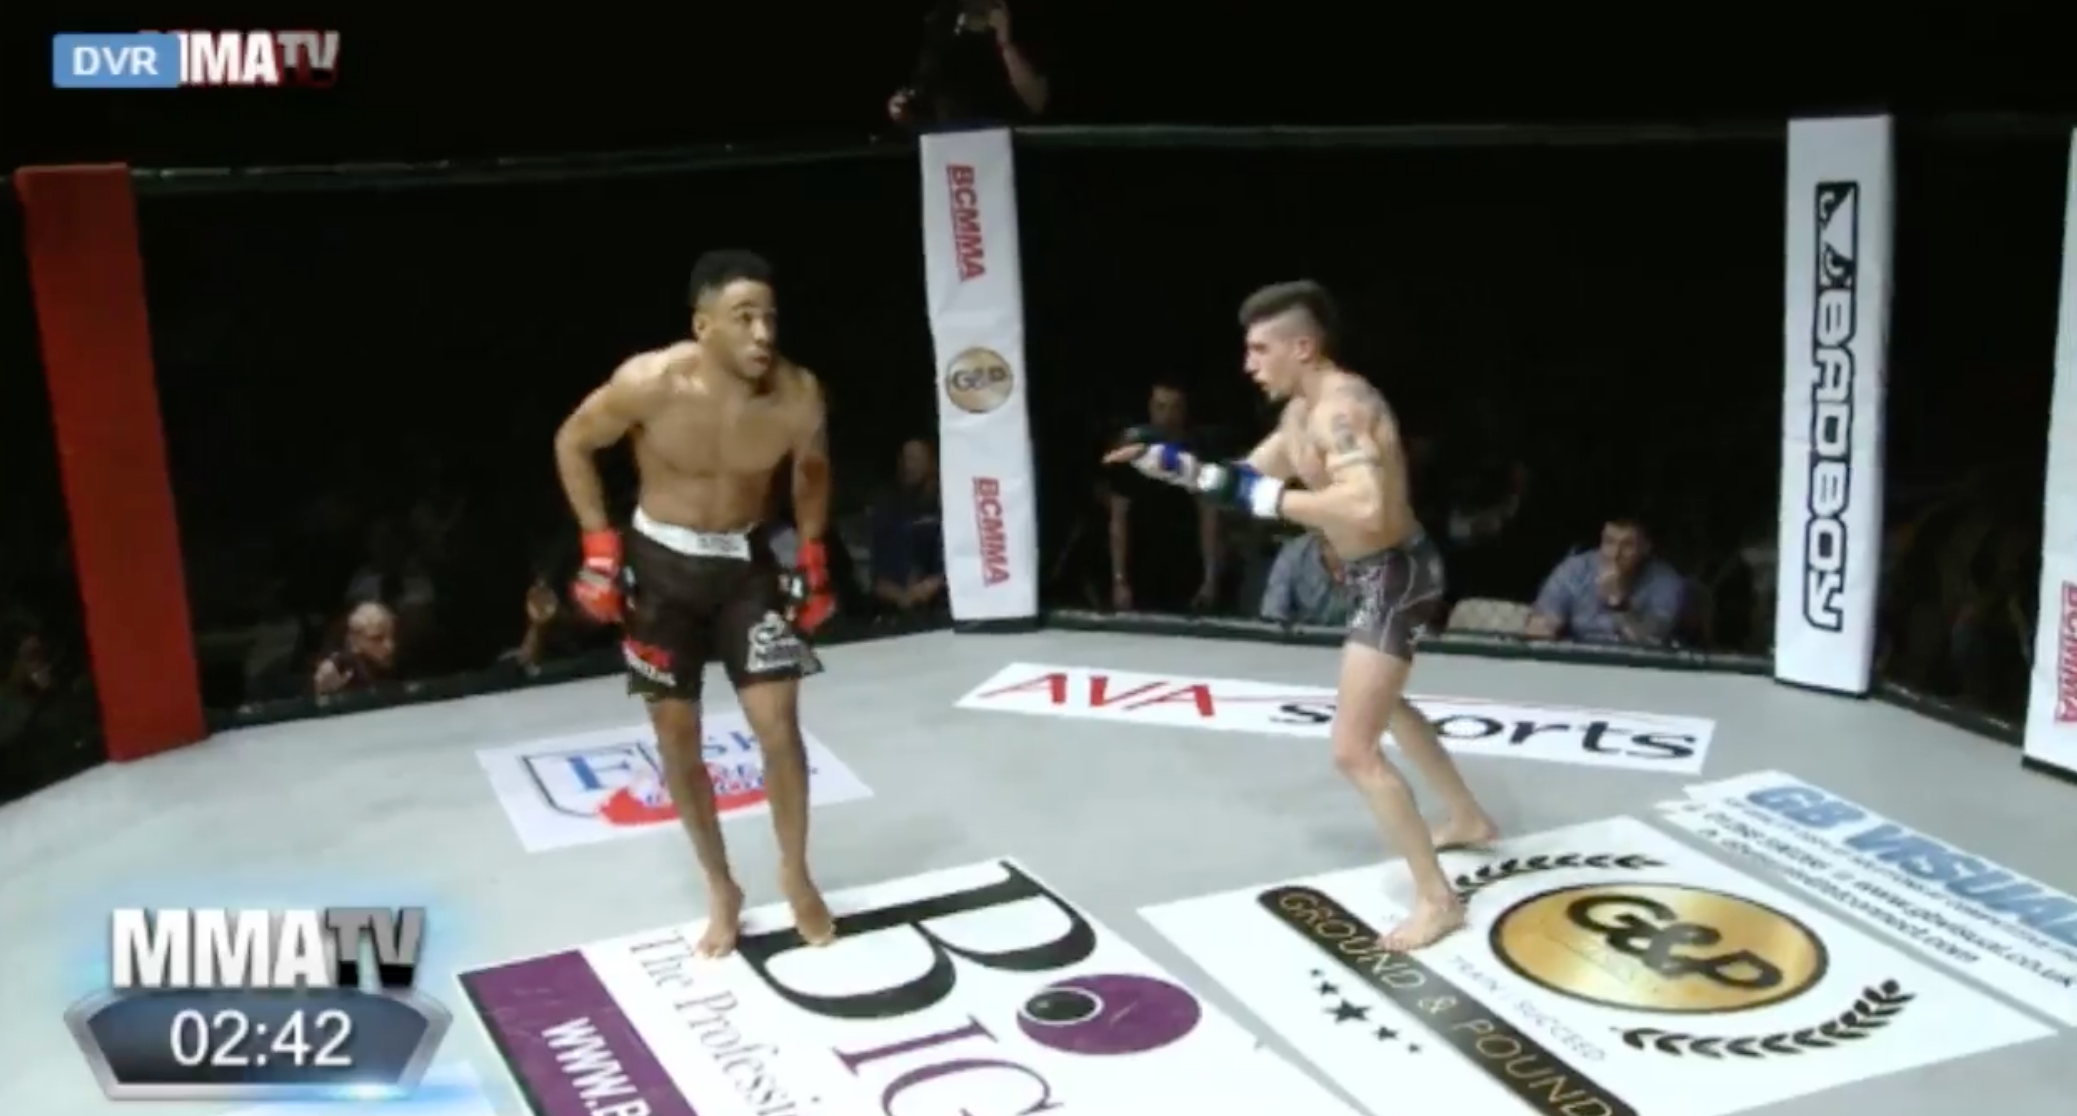 Fighter Tries Showboating, Pays the Price and Gets Headkick KO'd